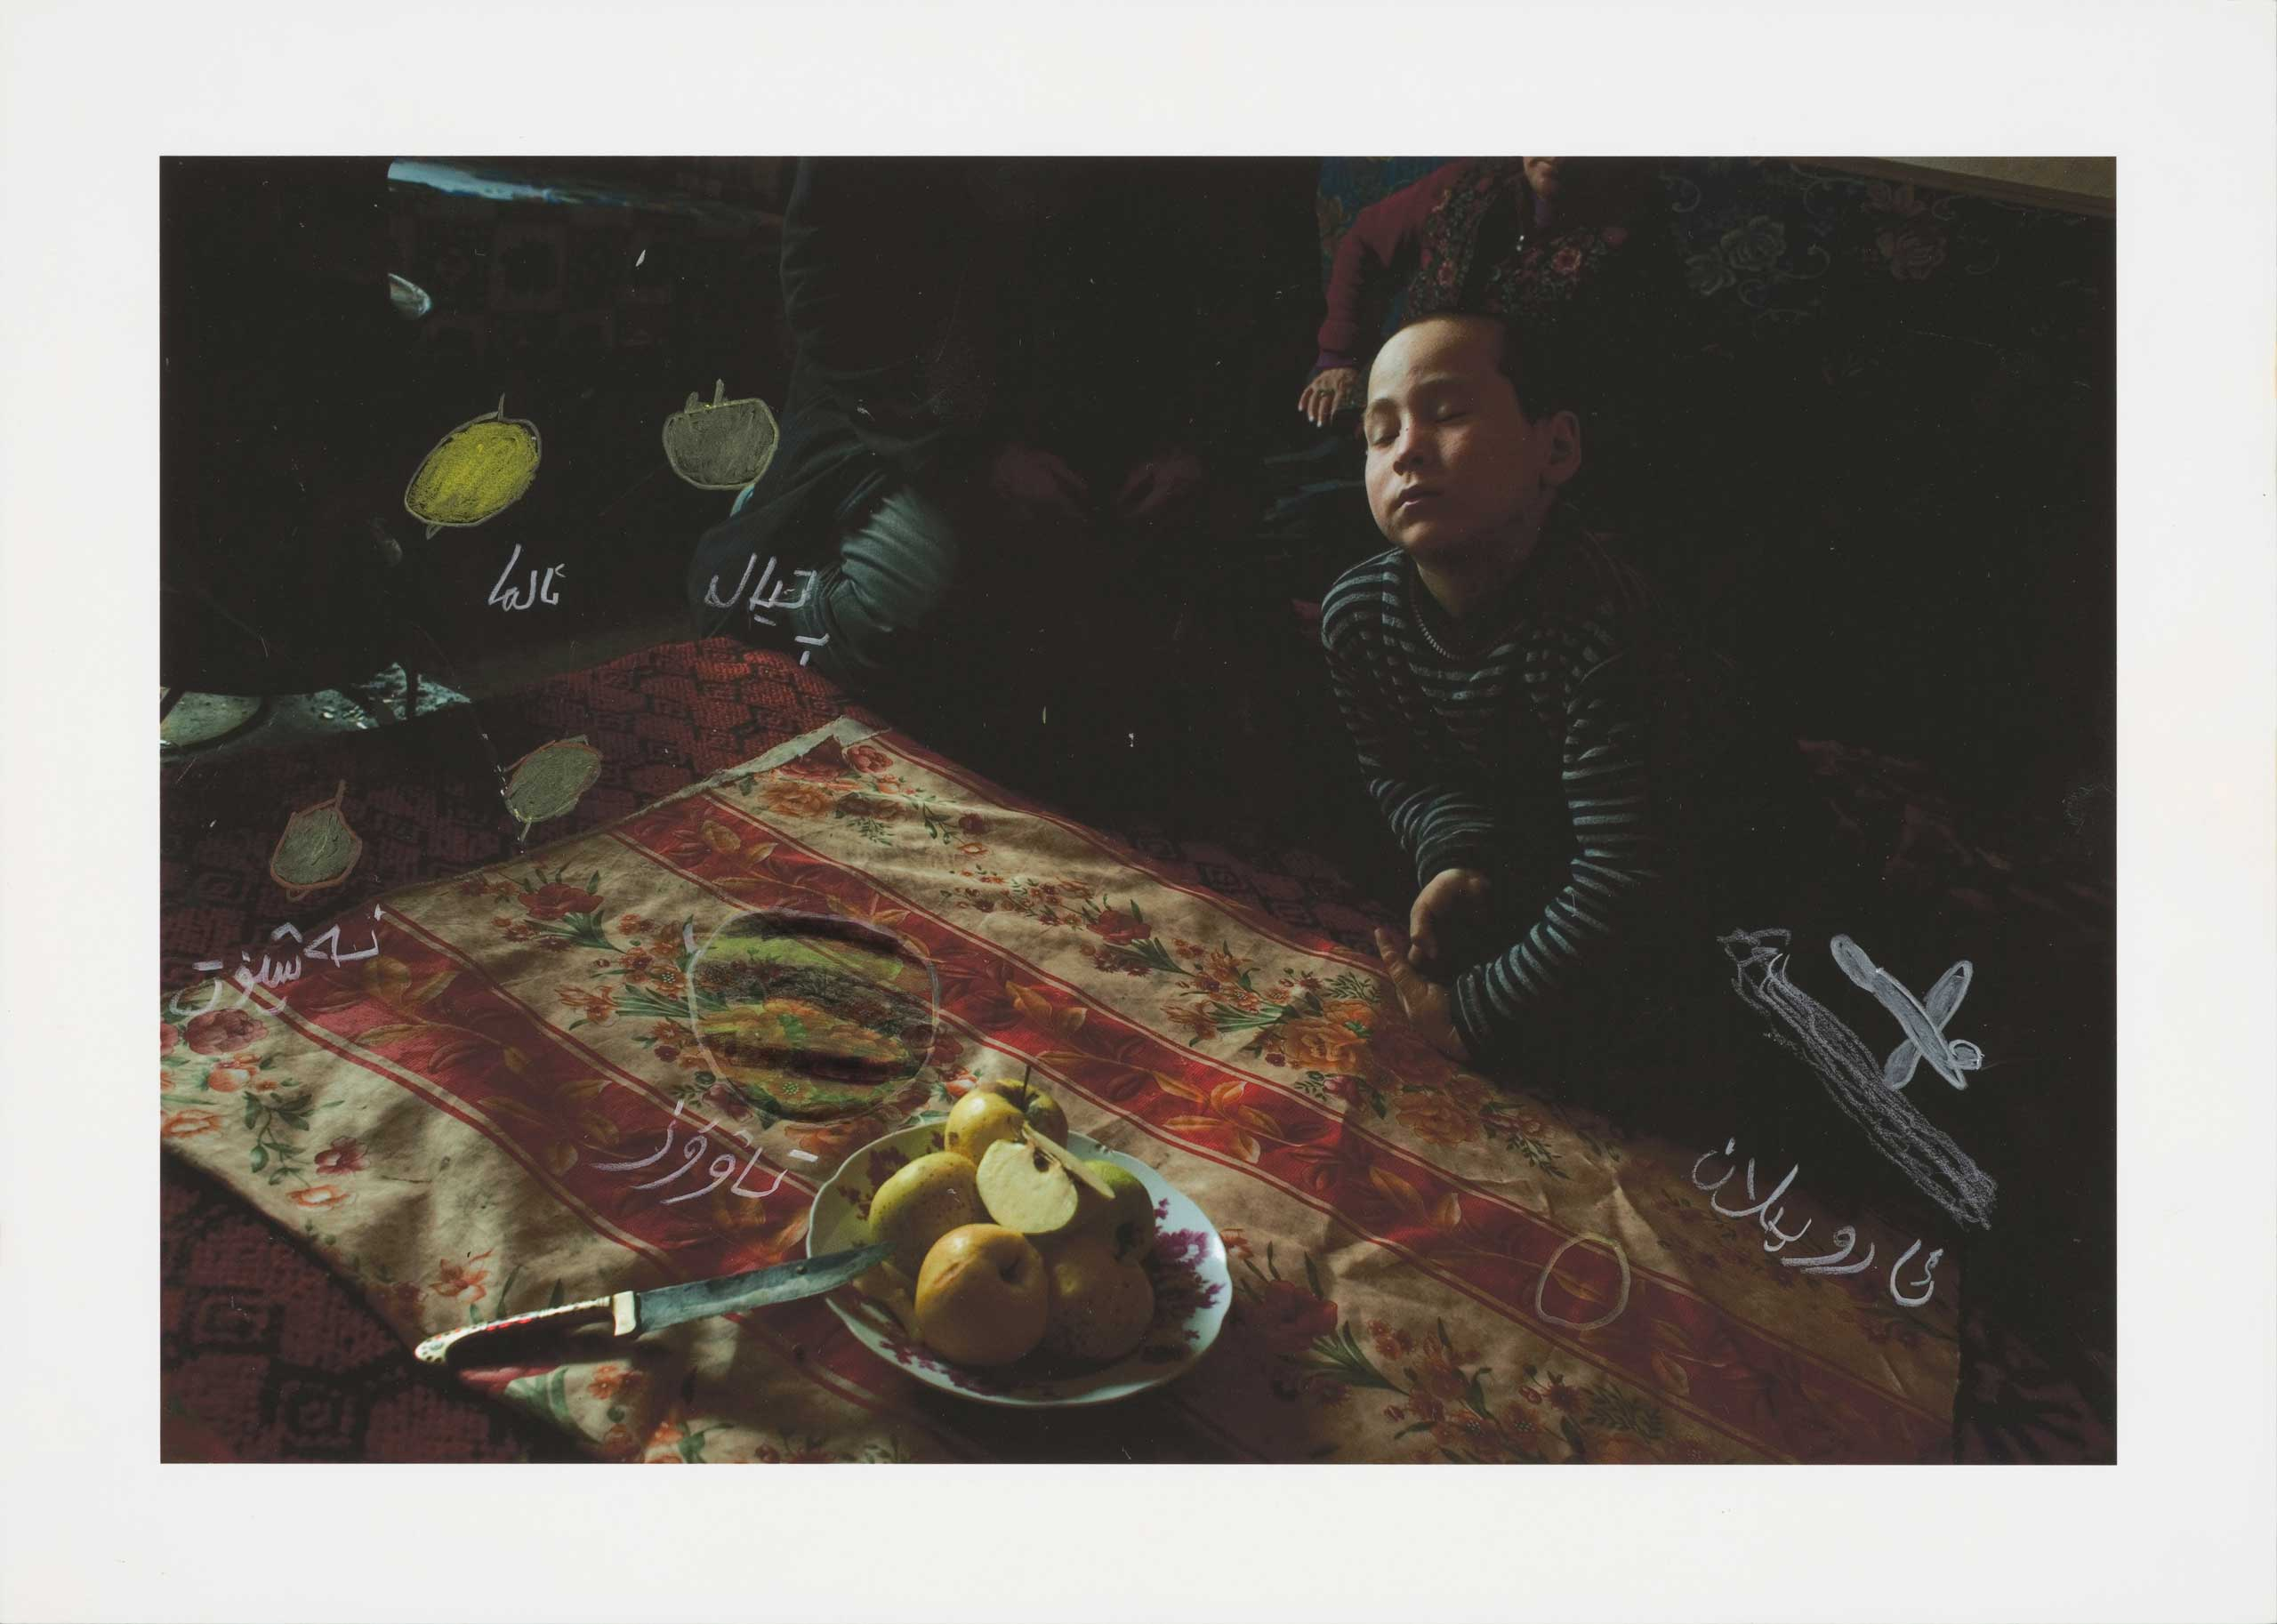 In 2011, I visited a family I had met a few years earlier in a village on the southern edge of the desert. I took pictures as we gathered around the table for lunch. When I returned with the print later that year, we again sat down in front of plates of fruit, this time to draw. 2011